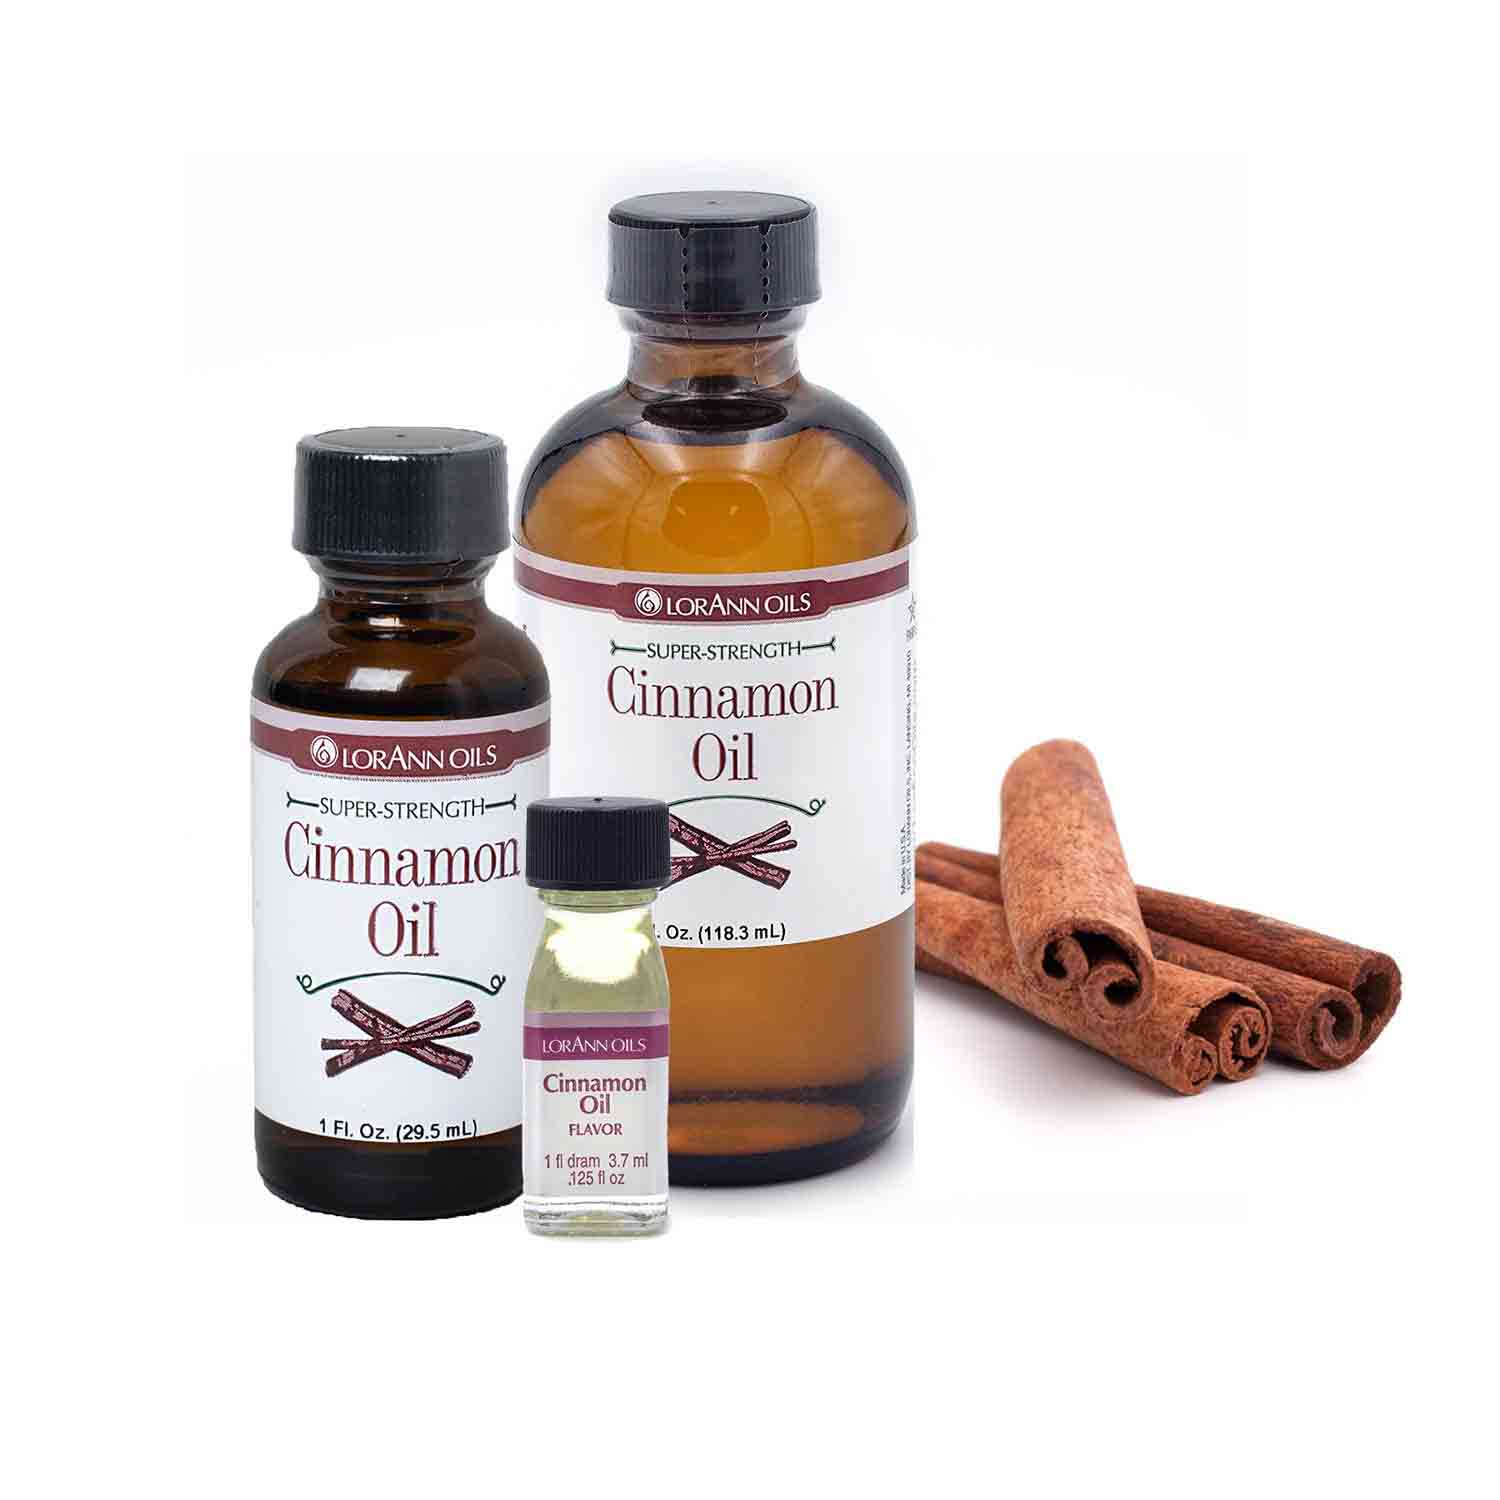 Cinnamon Super-Strength Oil